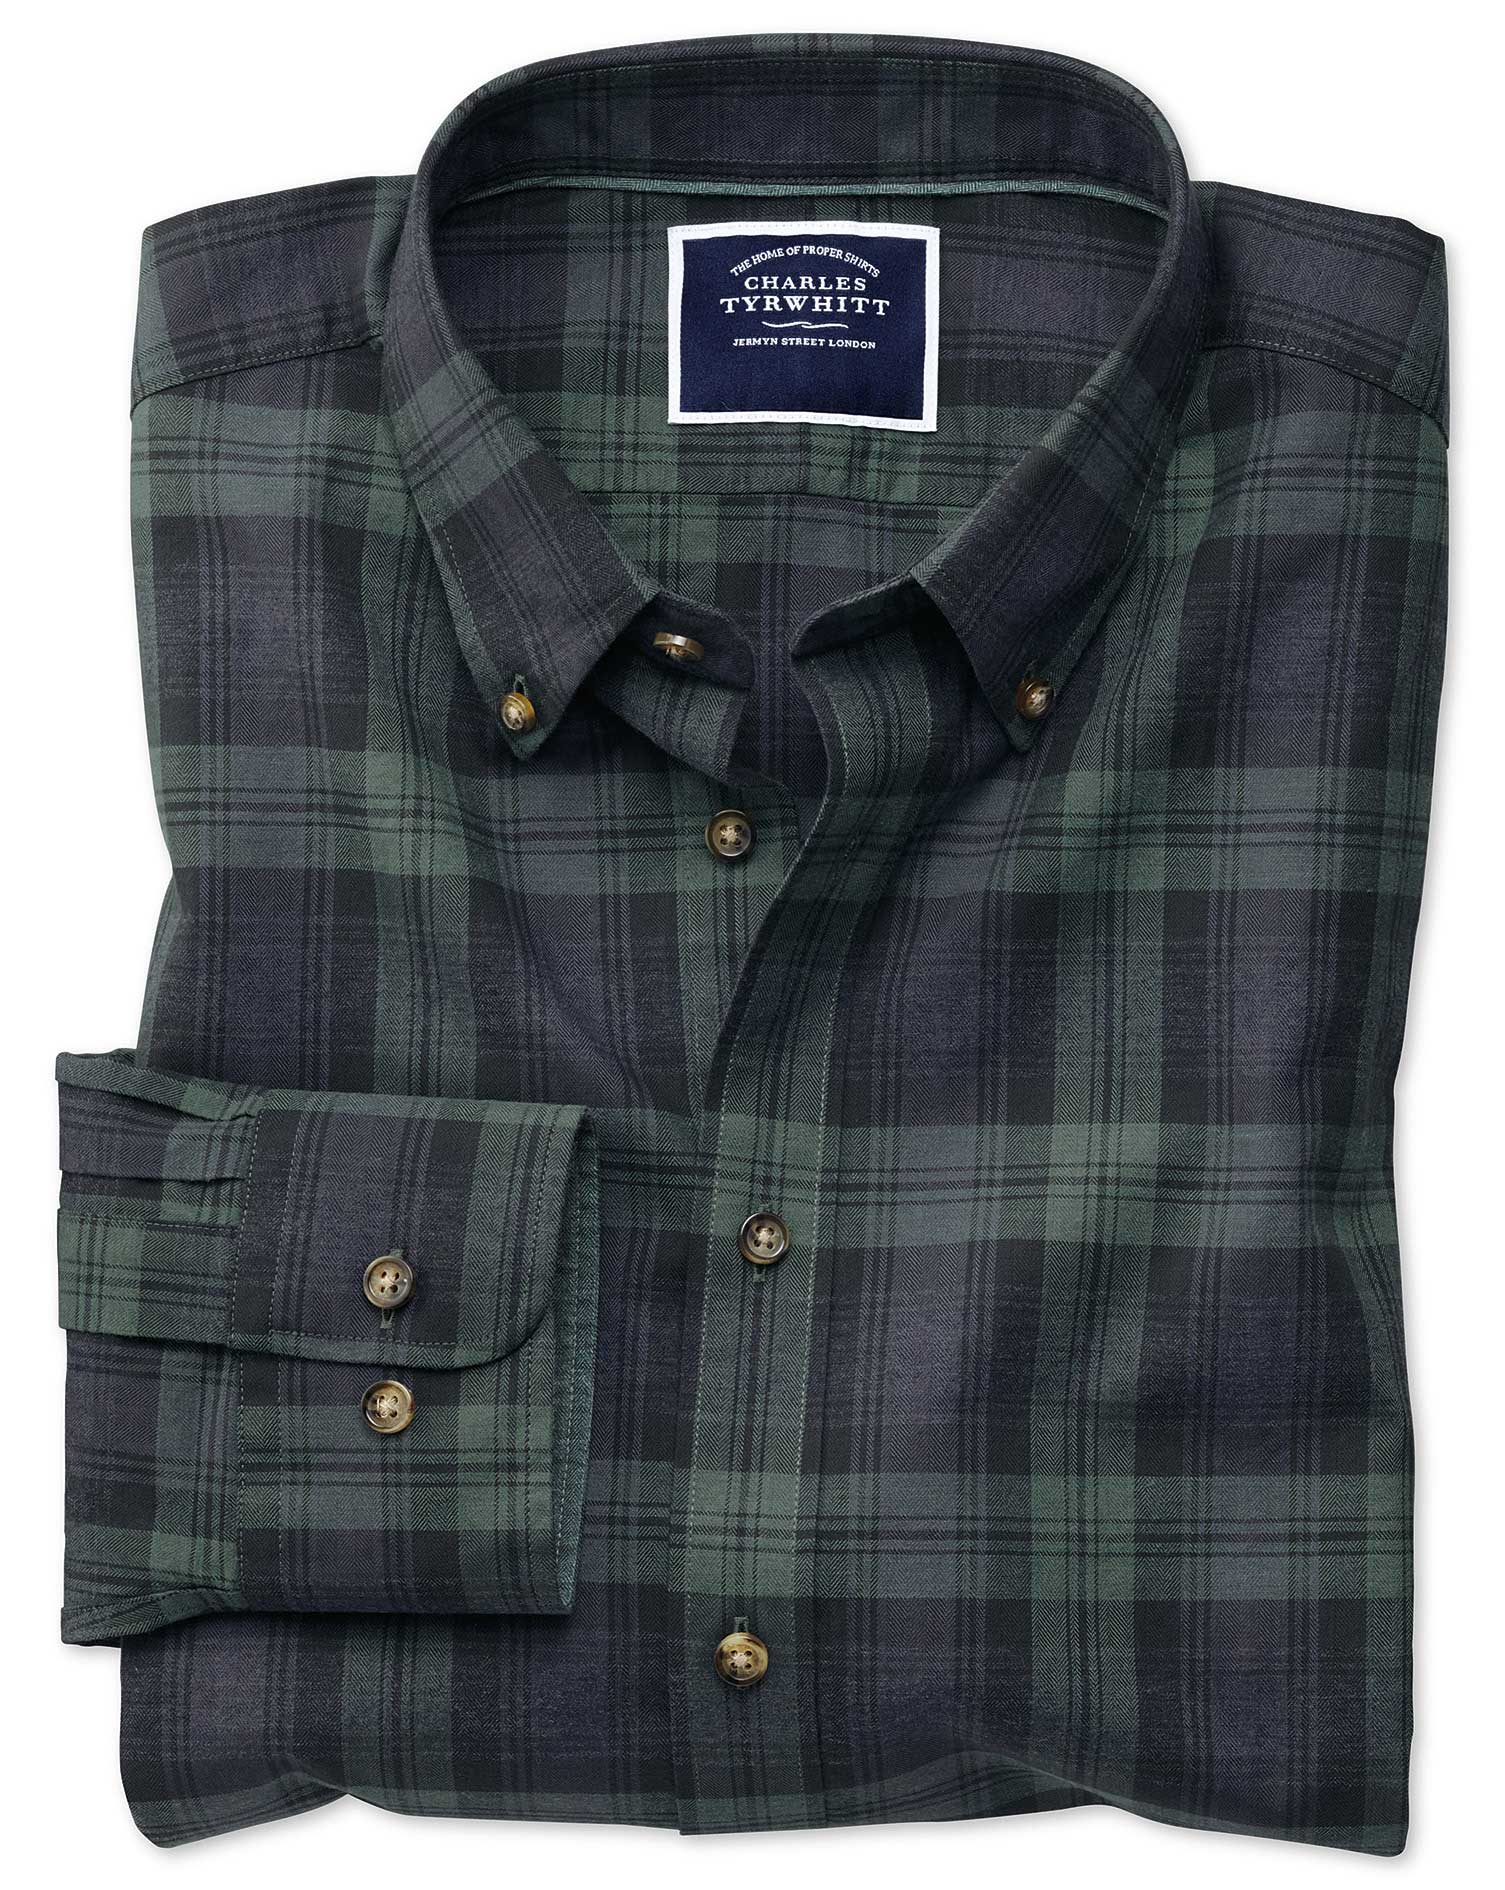 Extra Slim Fit Navy and Green Check Herringbone Melange Cotton Shirt Single Cuff Size XS by Charles